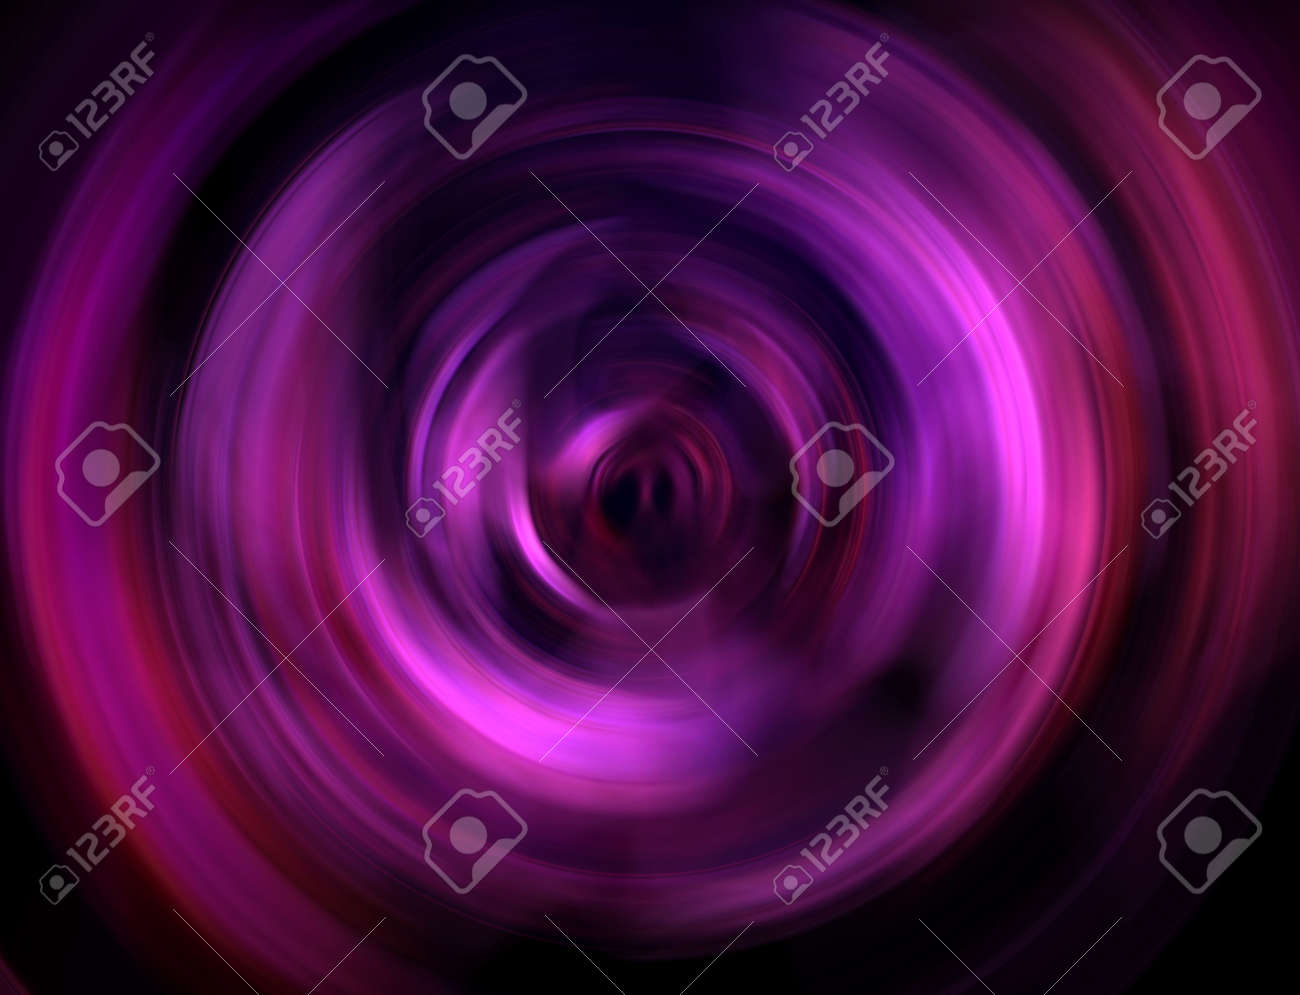 Abstract pink and purple background with a circular blur. Stock Photo - 3809332